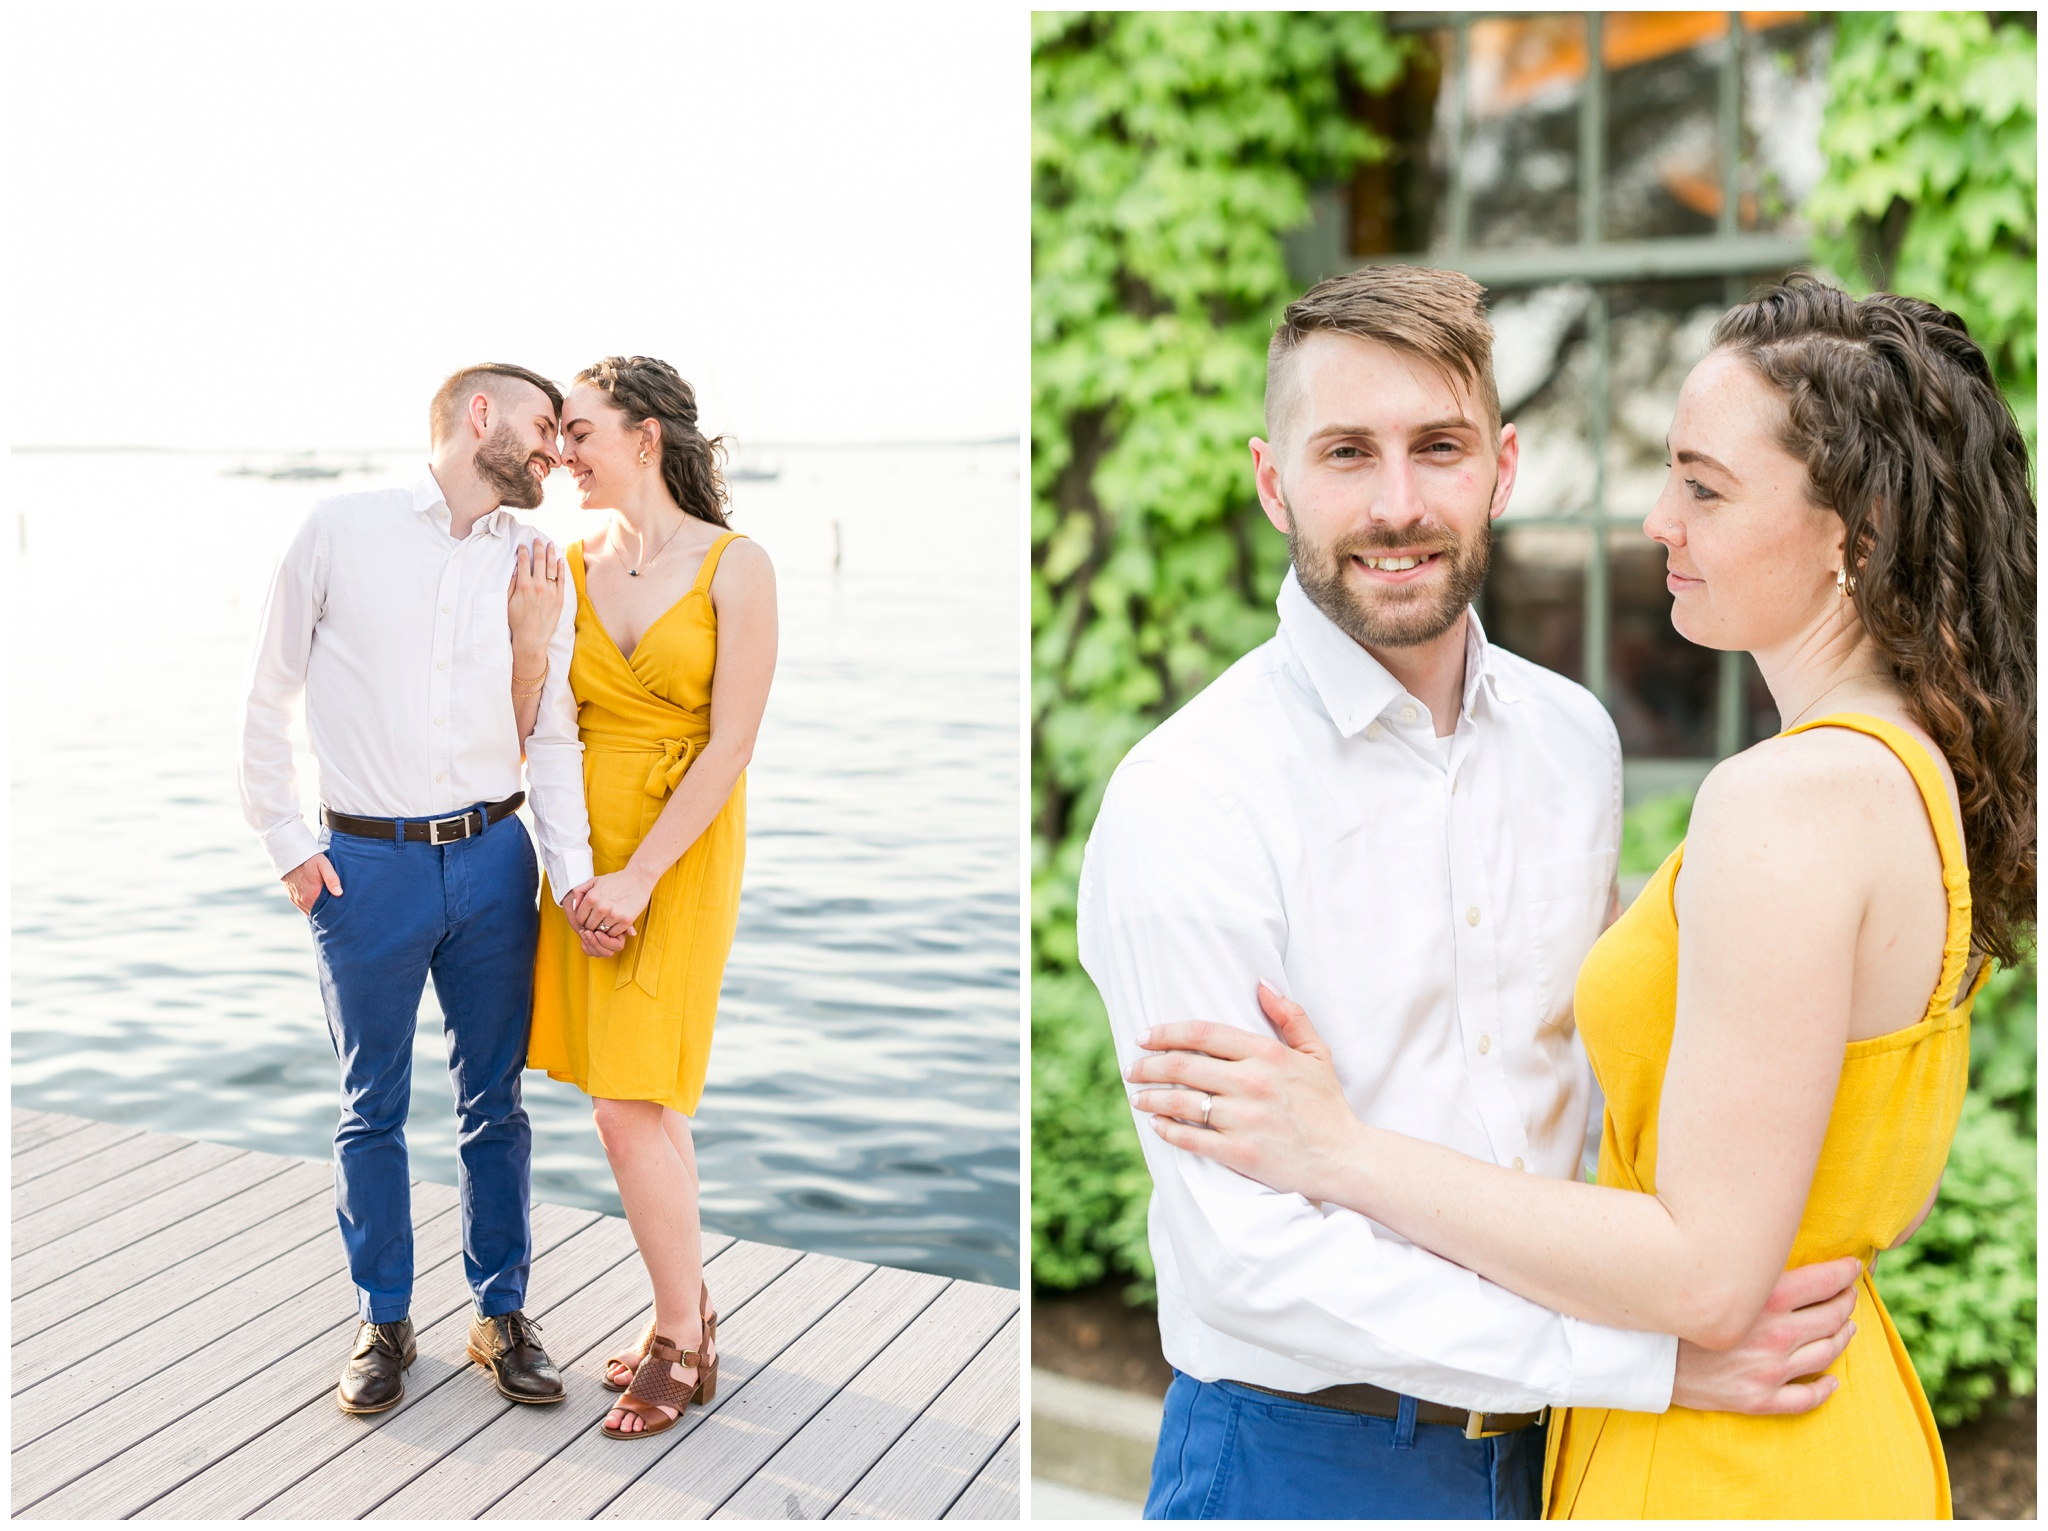 memorial_union_engagement_session_madison_wisconsin_photographers_3811.jpg